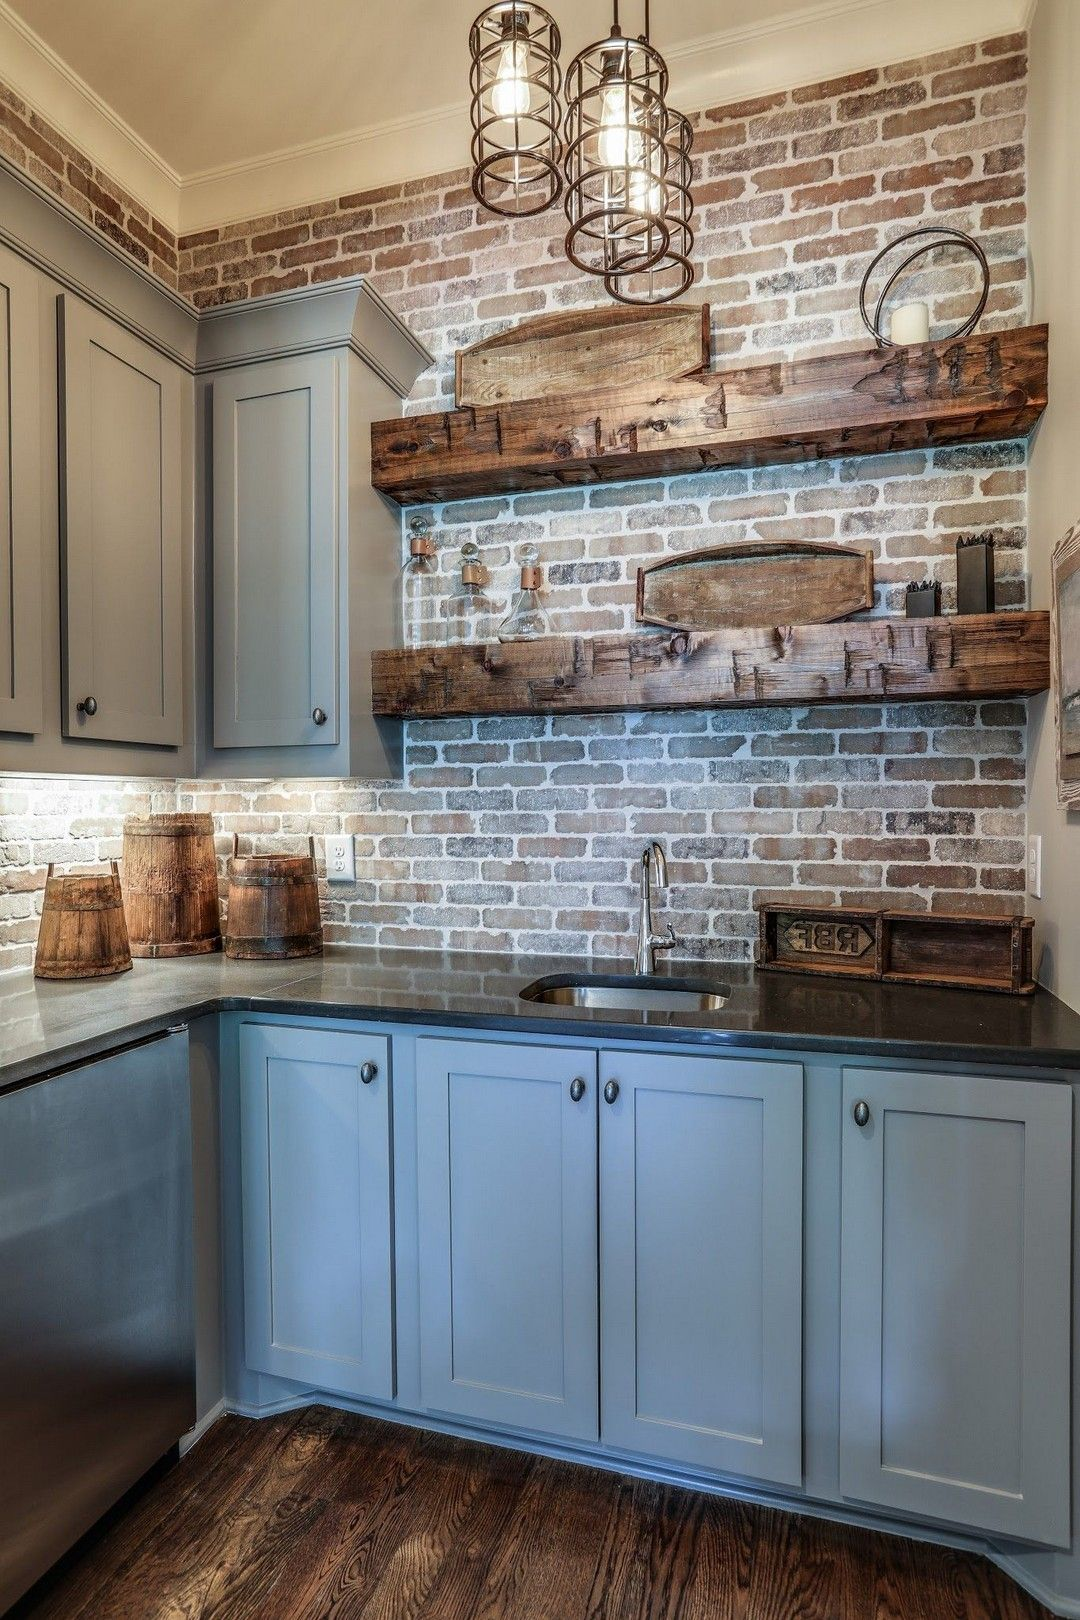 22 StyleSetting Rustic Destined for Your Backsplash